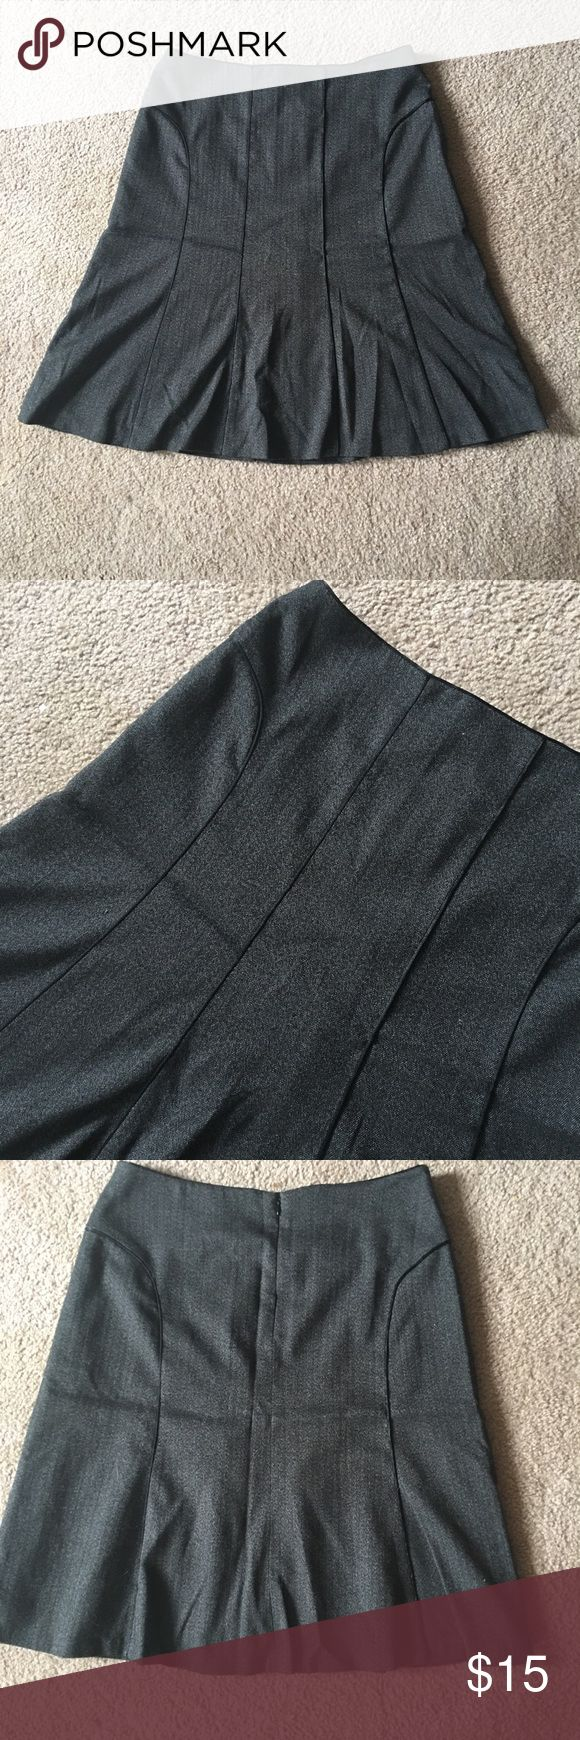 Curvy friendly charcoal gray skirt This is one of my fave skirts, I'm selling it because it's too small. It hugs your curves and then bellows out at the bottom. It has piping detail on the front and back to help emphasize or create curves. Skirt has a built in liner.  Not stretchy, in great condition, smoke free home Sorry no holds, trades or free shipping Judith Hart Skirts A-Line or Full